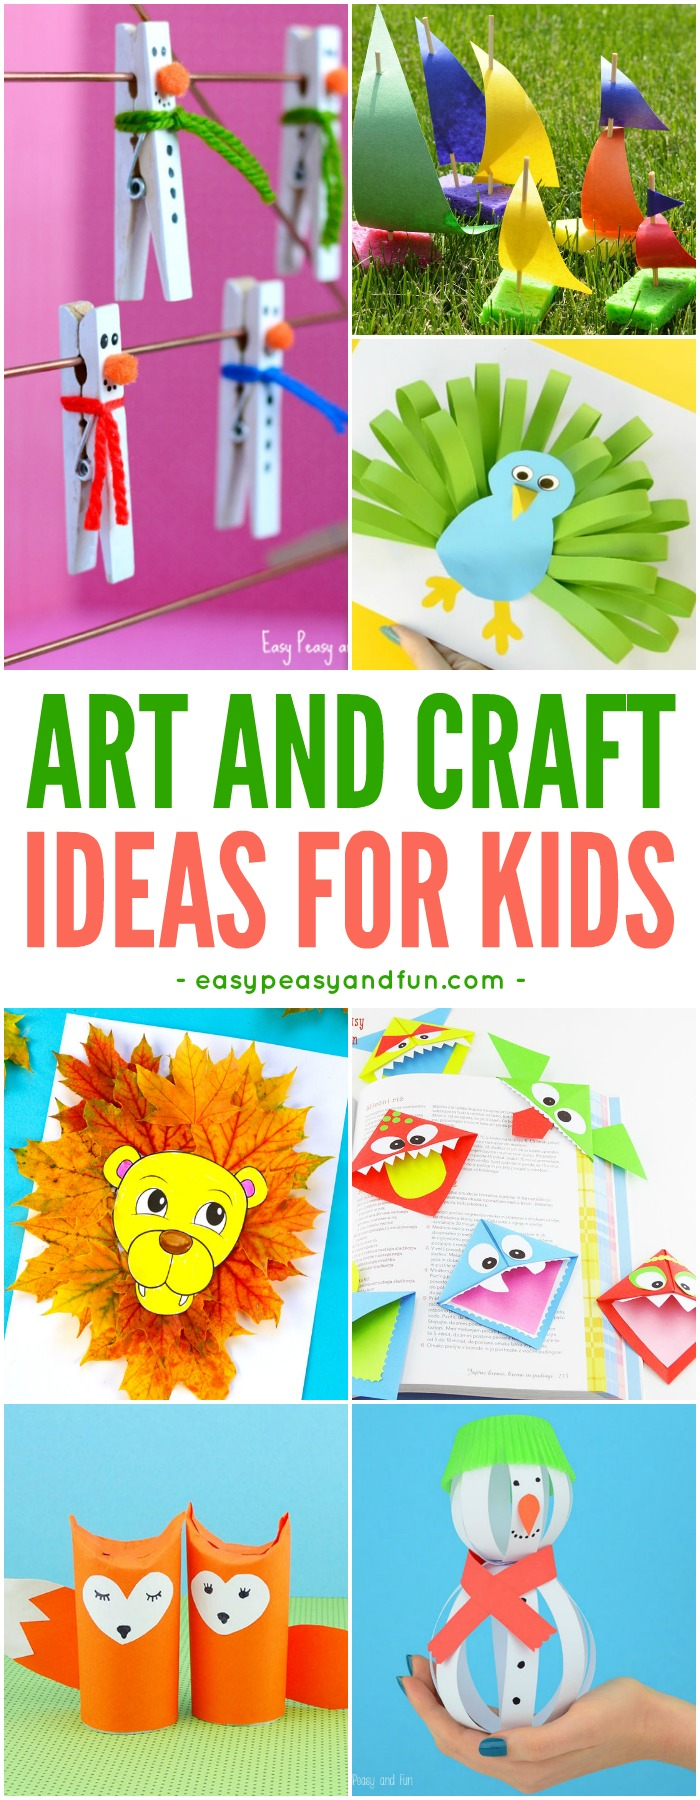 Crafts For Kids Tons Of Art And Craft Ideas For Kids To Make Easy Peasy And Fun